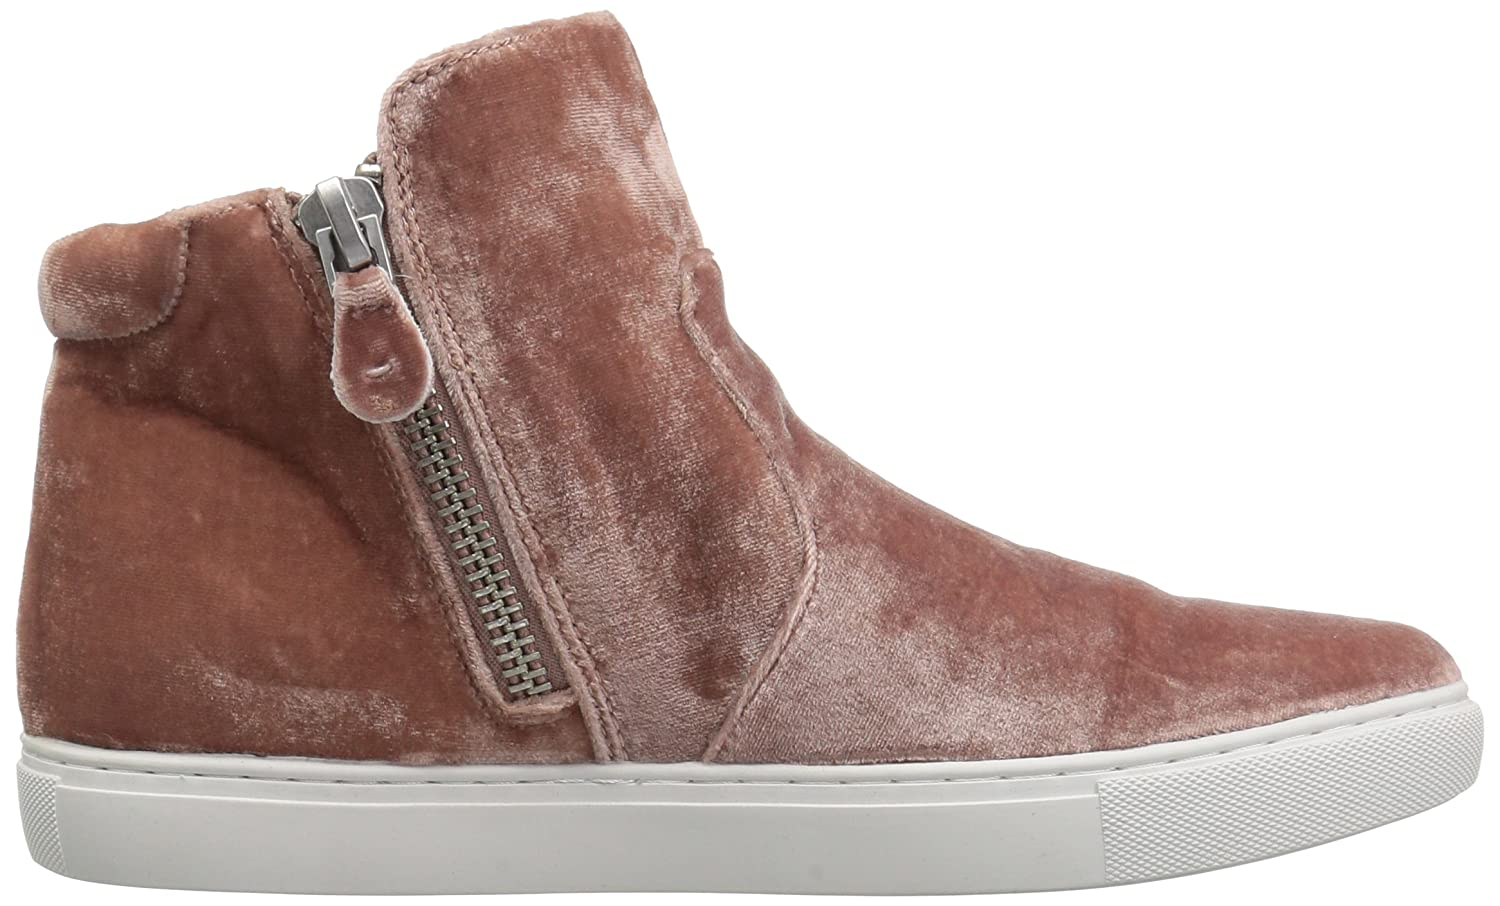 Gentle Souls Women's Carole Double Zip Mid-Top Sneaker B075GZWNQ4 9 B(M) US|Blush